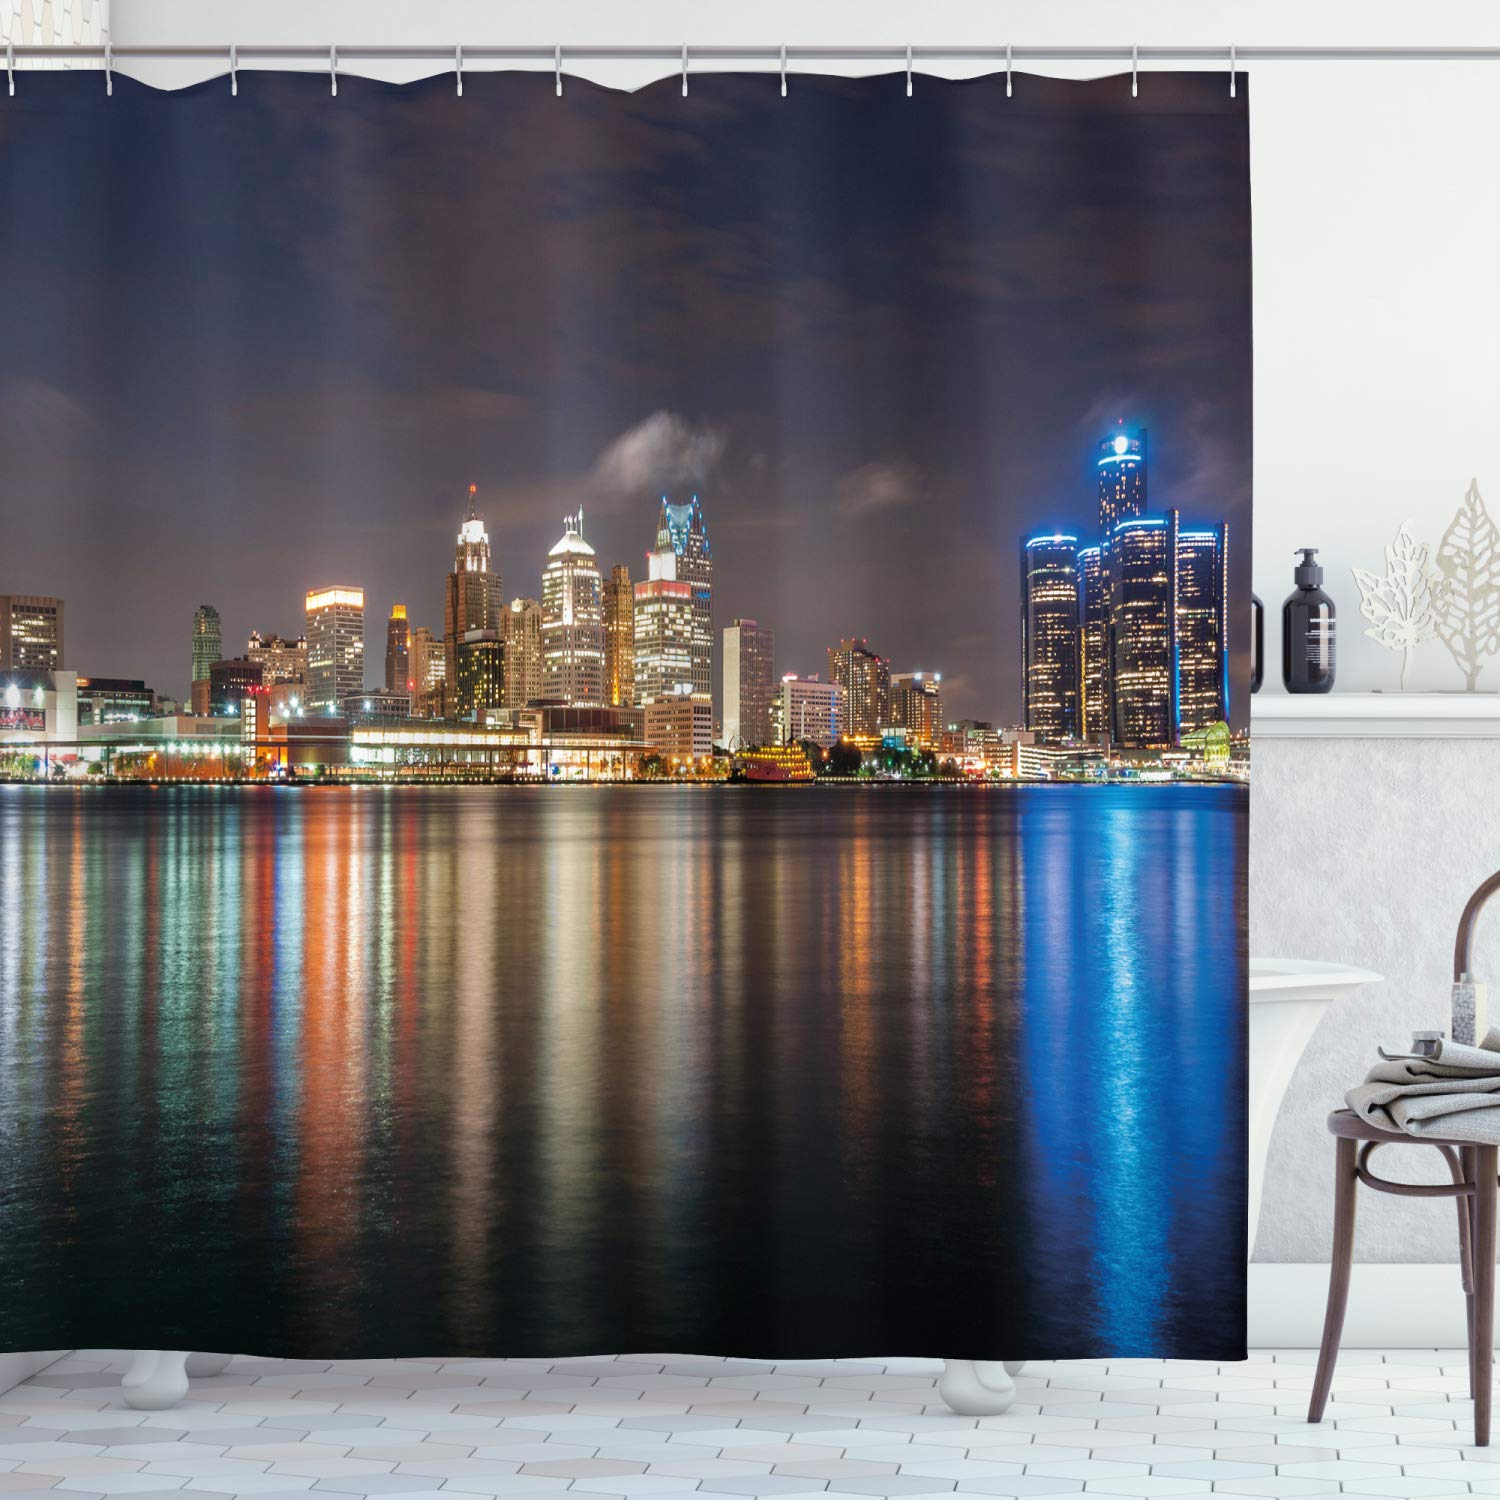 Ambesonne Detroit Shower Curtain Modern Metropolis Cityscape At Night Time Detroit River With Colorful Reflection Cloth Fabric Bathroom Decor Set